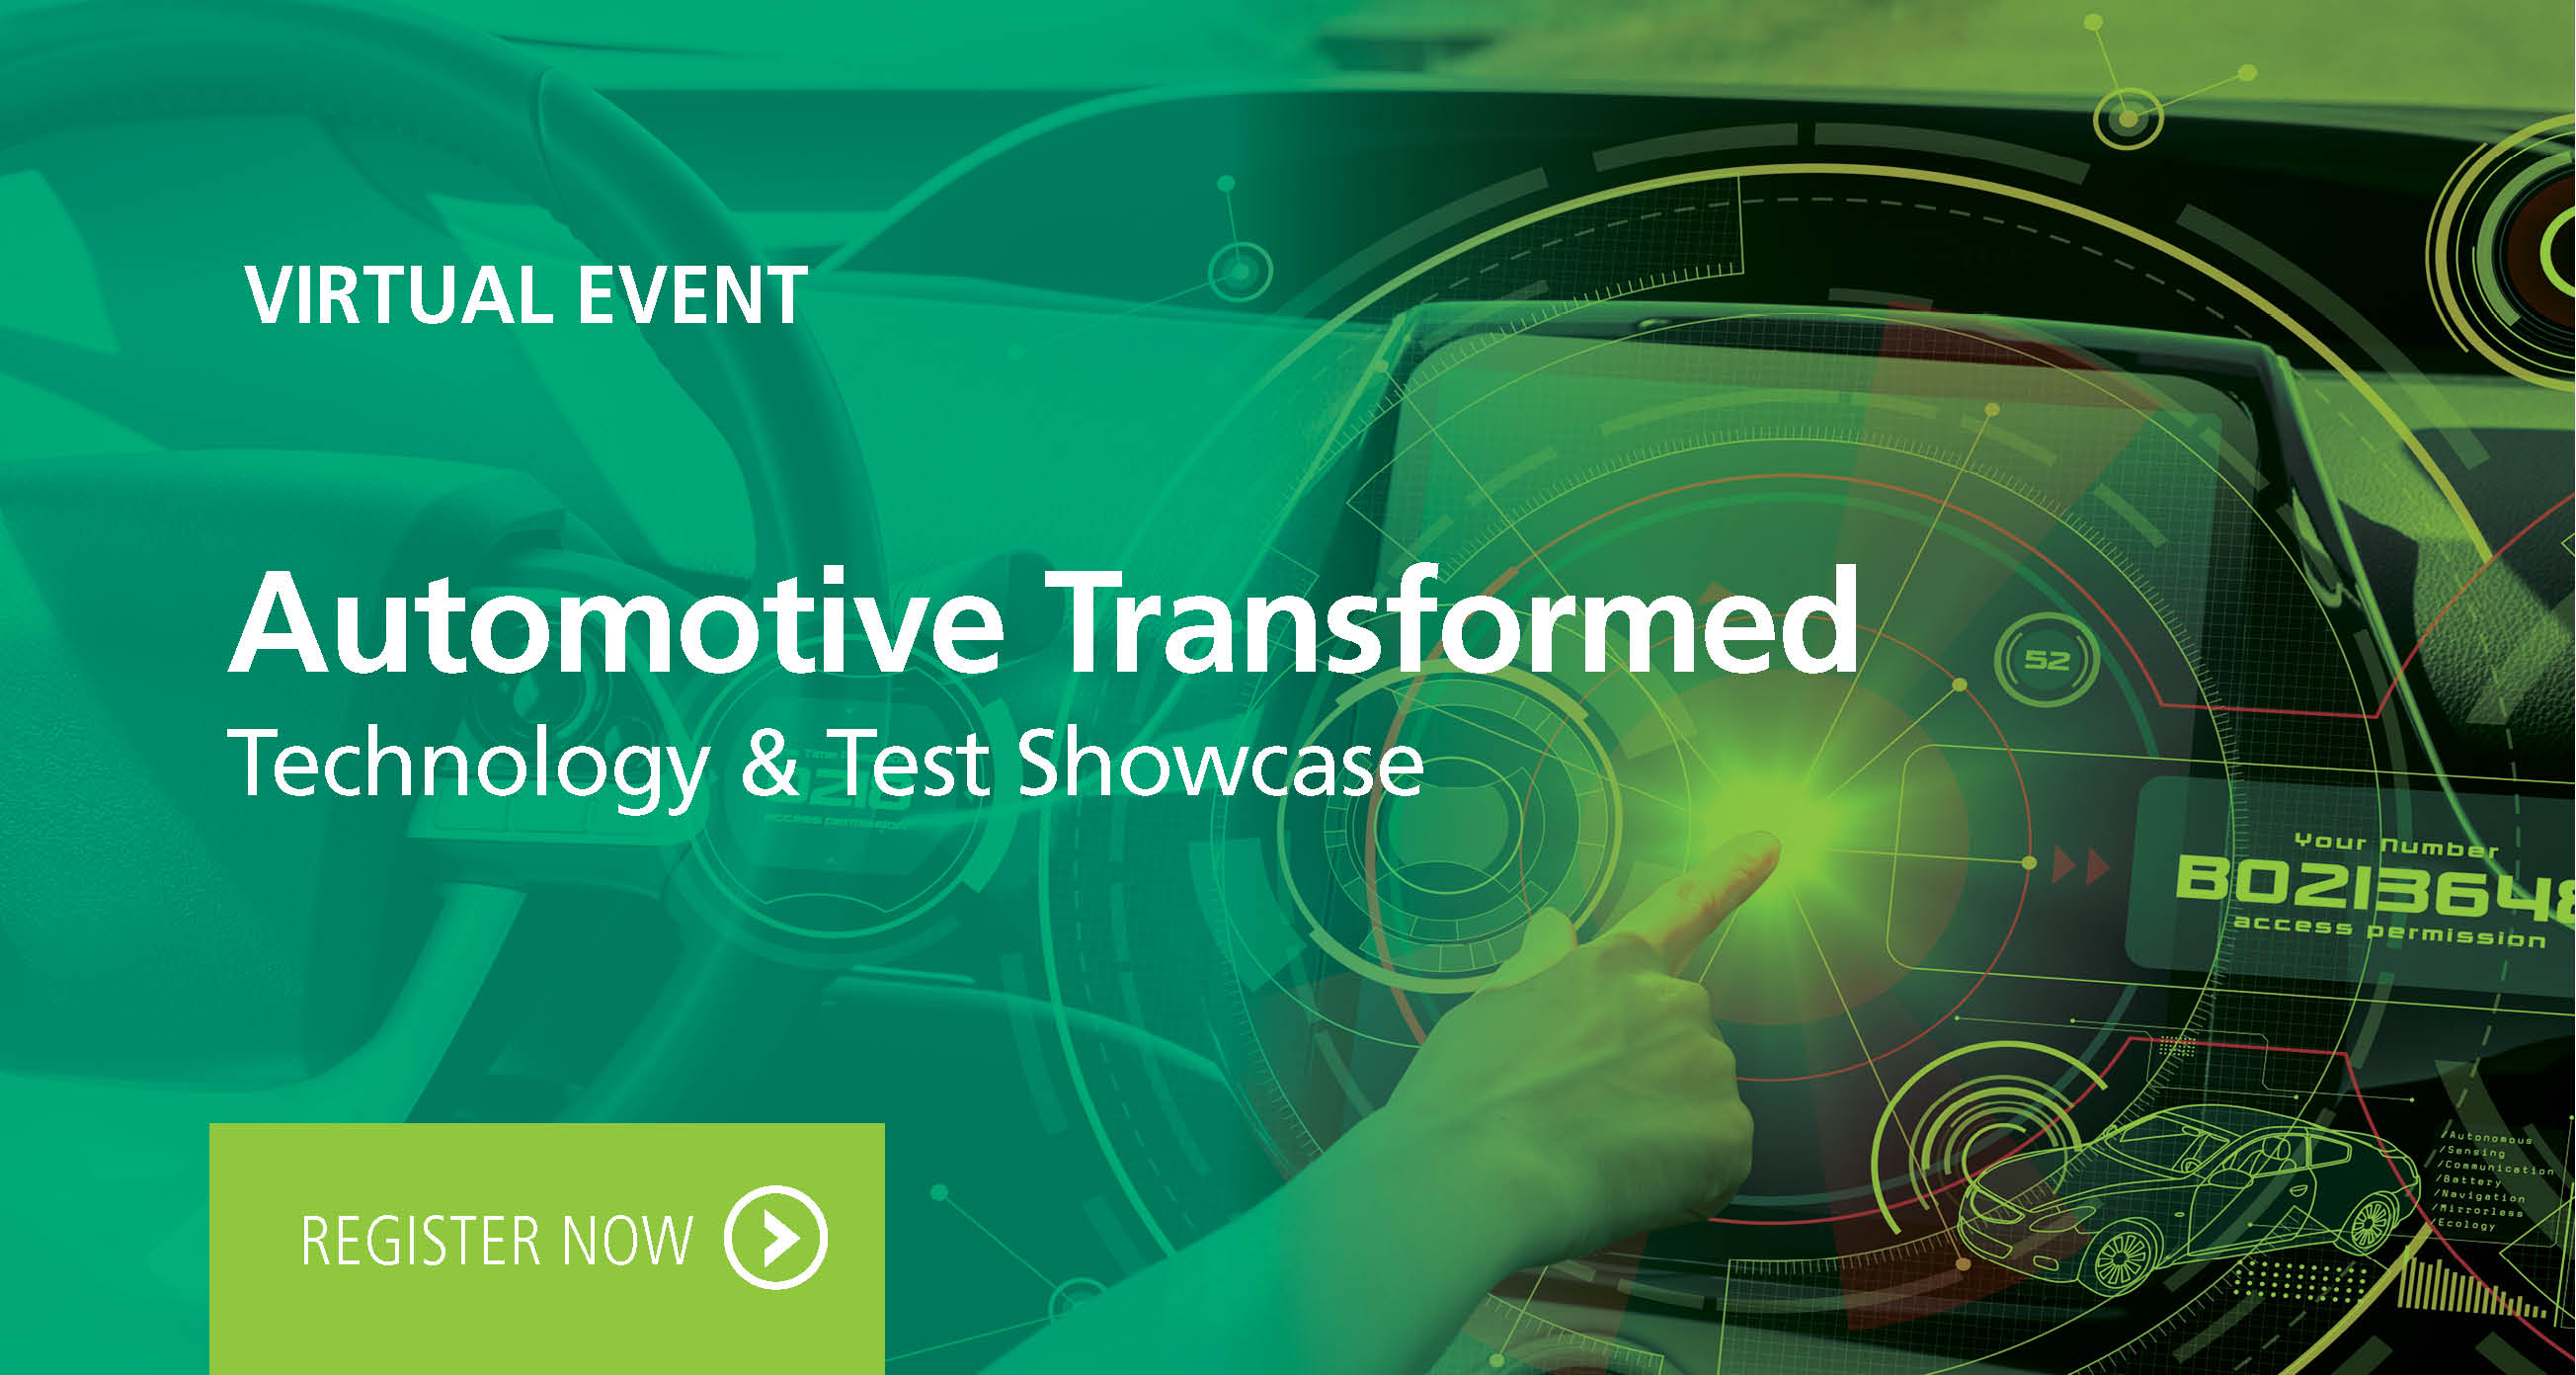 Automotive Transformed: Technology and Test Showcases Virtual Event